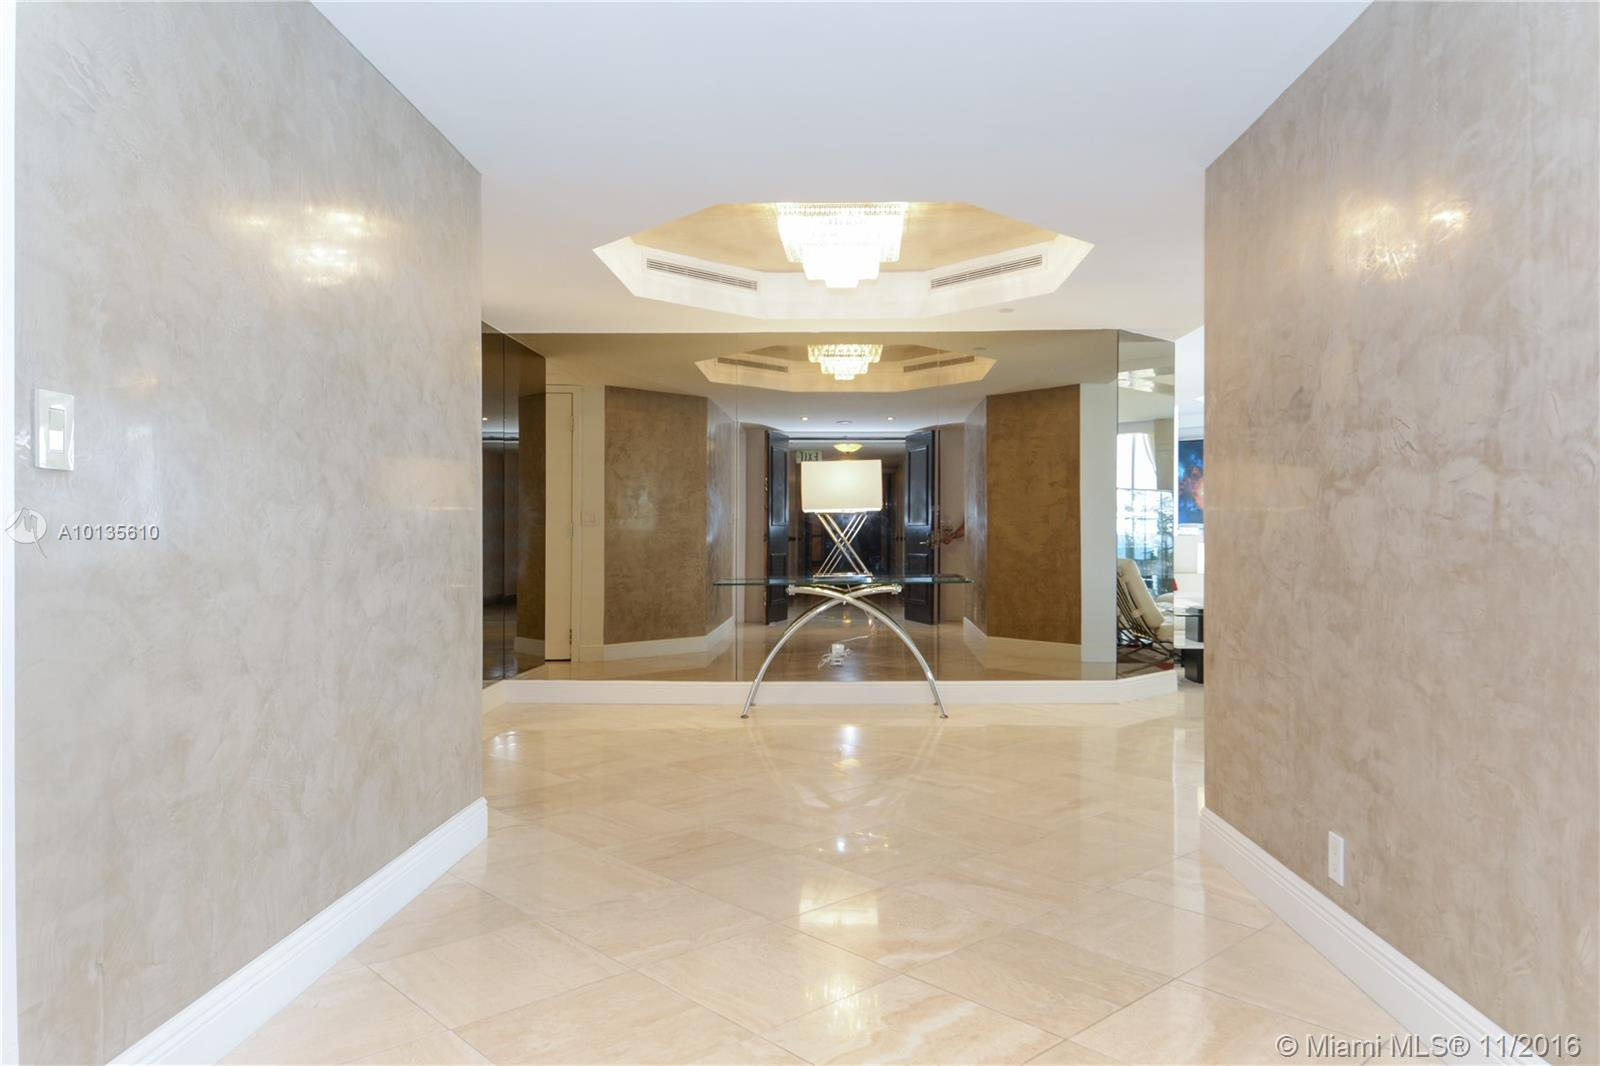 19500 Turnberry way-26AB aventura--fl-33180-a10135610-Pic31